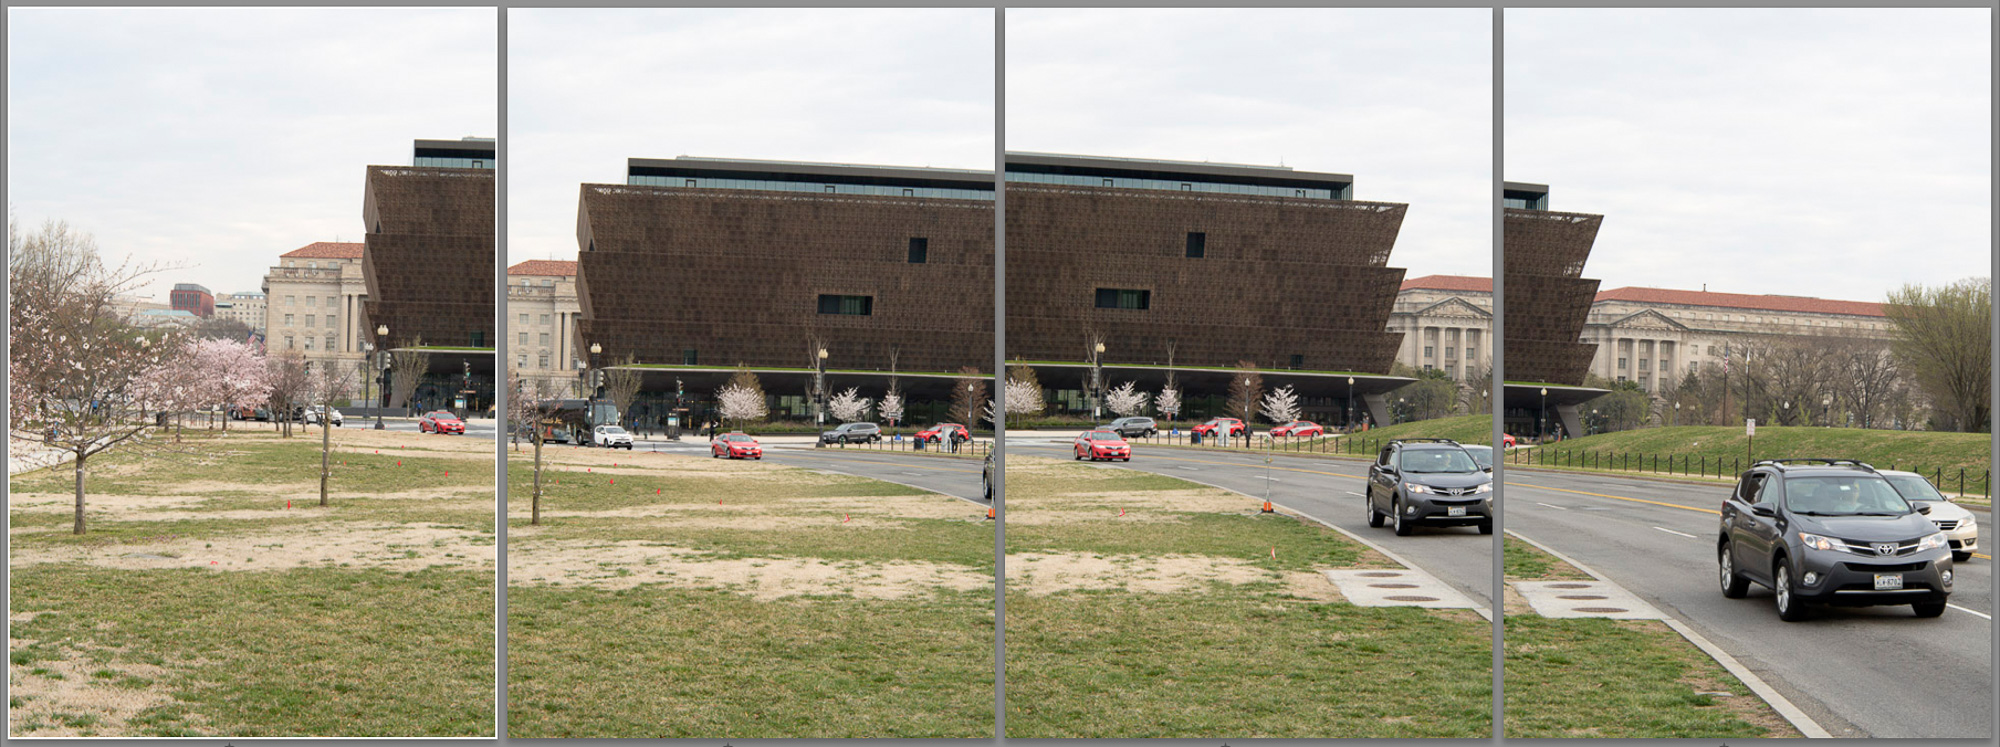 The 4 photos that were combined into the final stitched panorama. Notice the locations of the cars, some of which move from frame to frame.